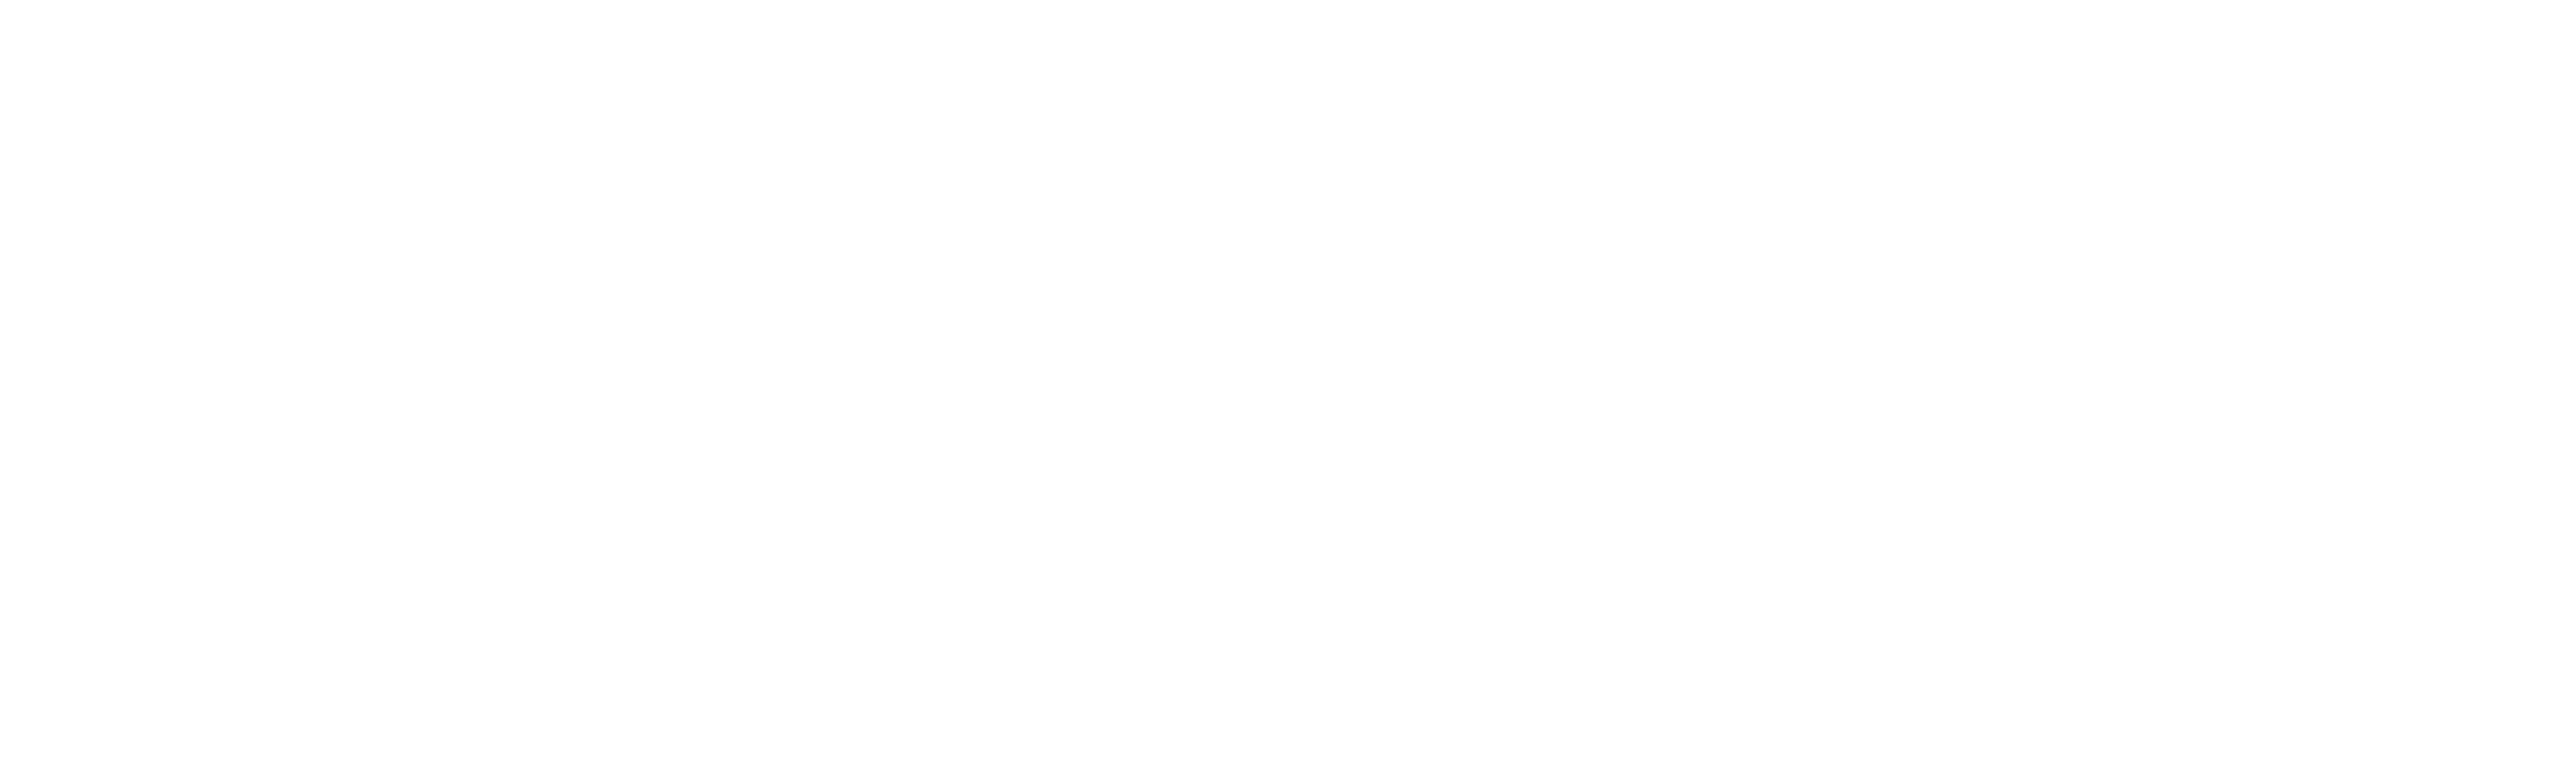 Halton Women's Place Logo